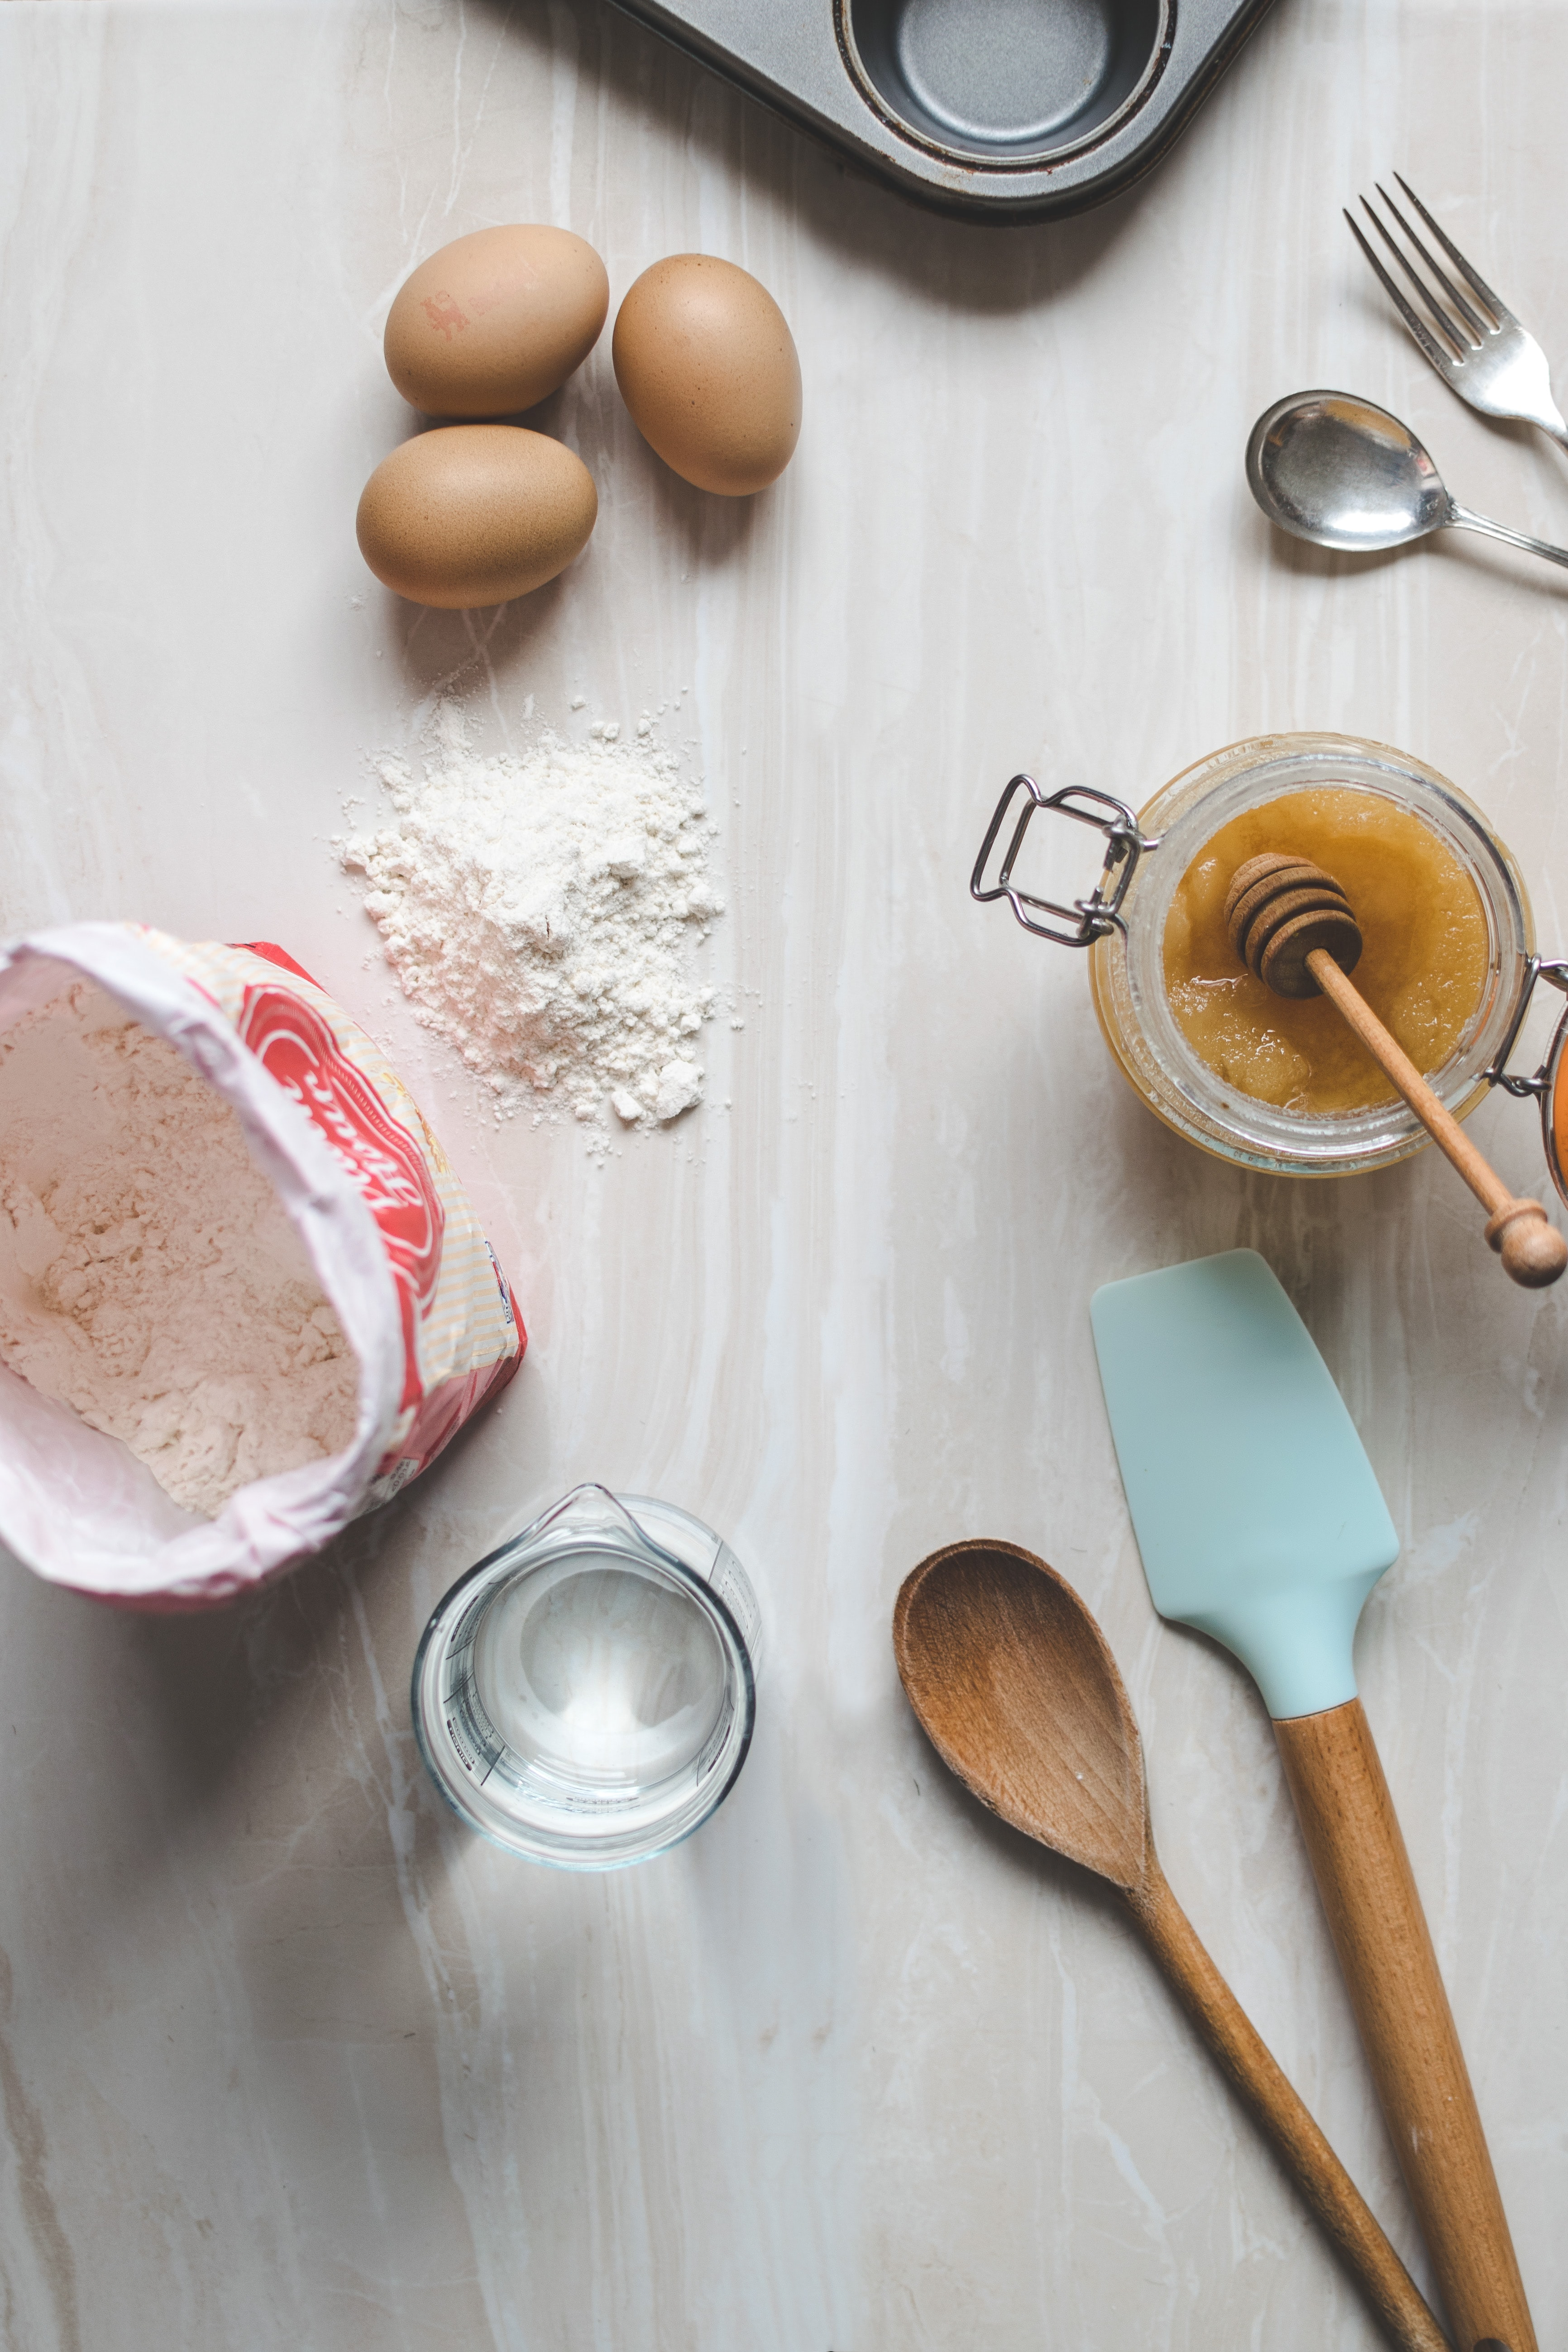 spatulas, flour, eggs, water, pan, and spoon and fork on counter